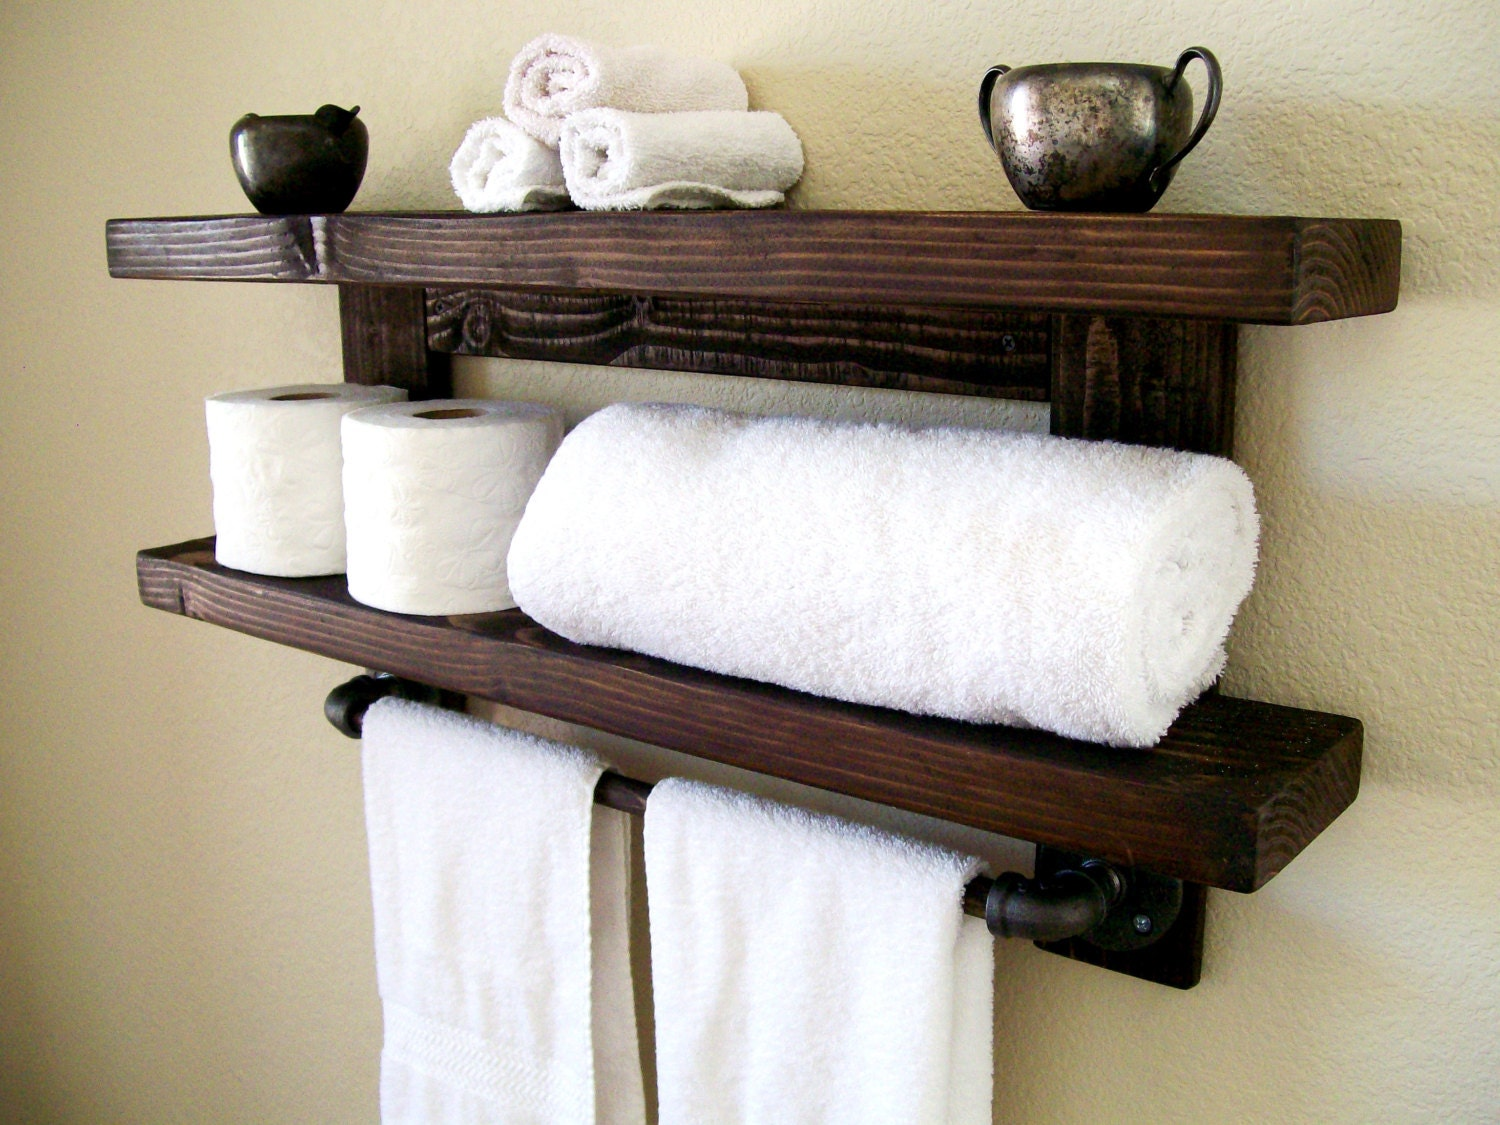 Floating Shelves Towel Rack Floating Shelf Wall Shelf Wood Shelf Bathroom Shelves Storage Organization Toilet Paper